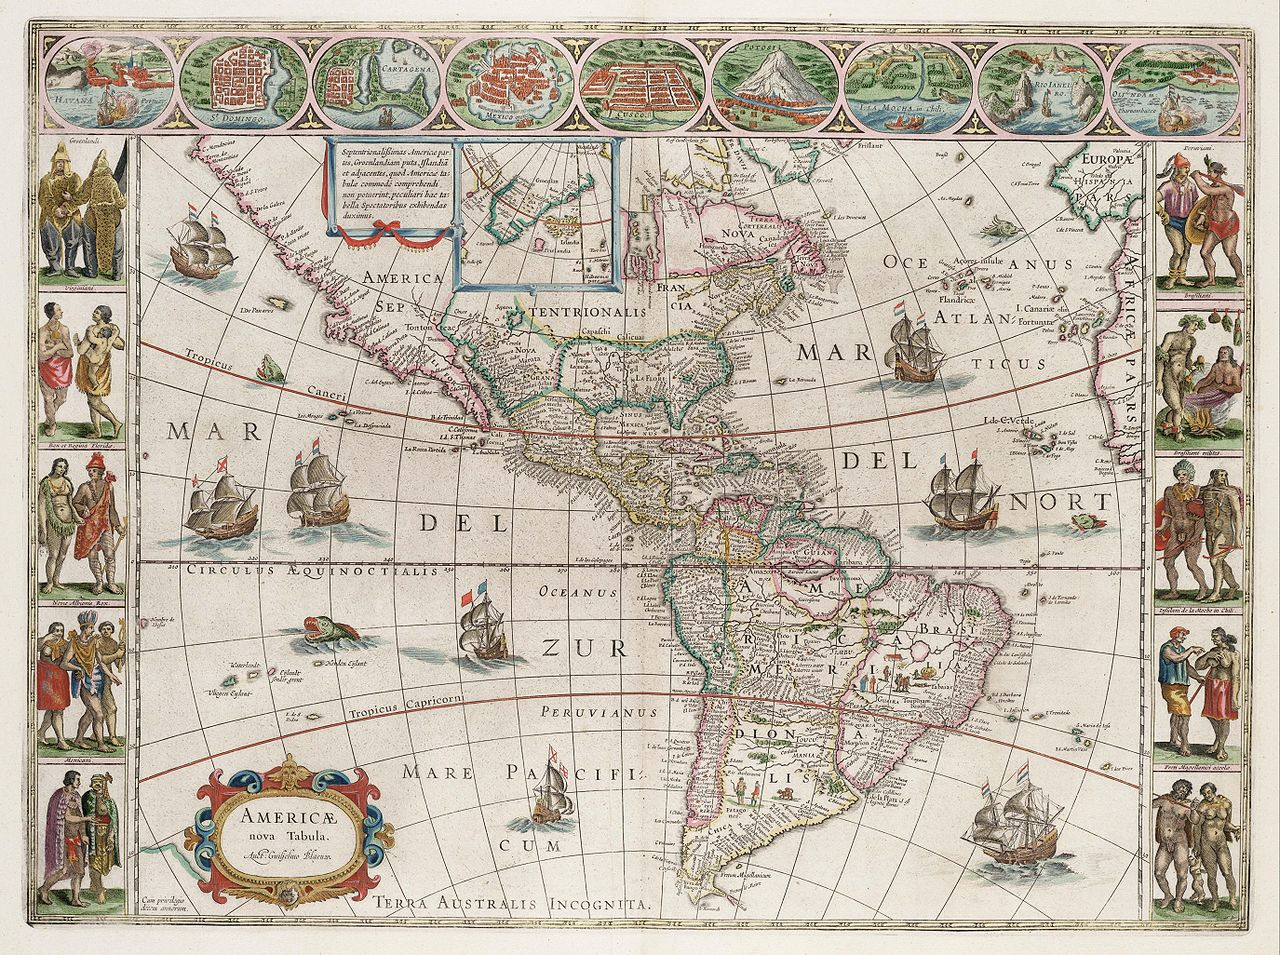 america tapestry Old map of South